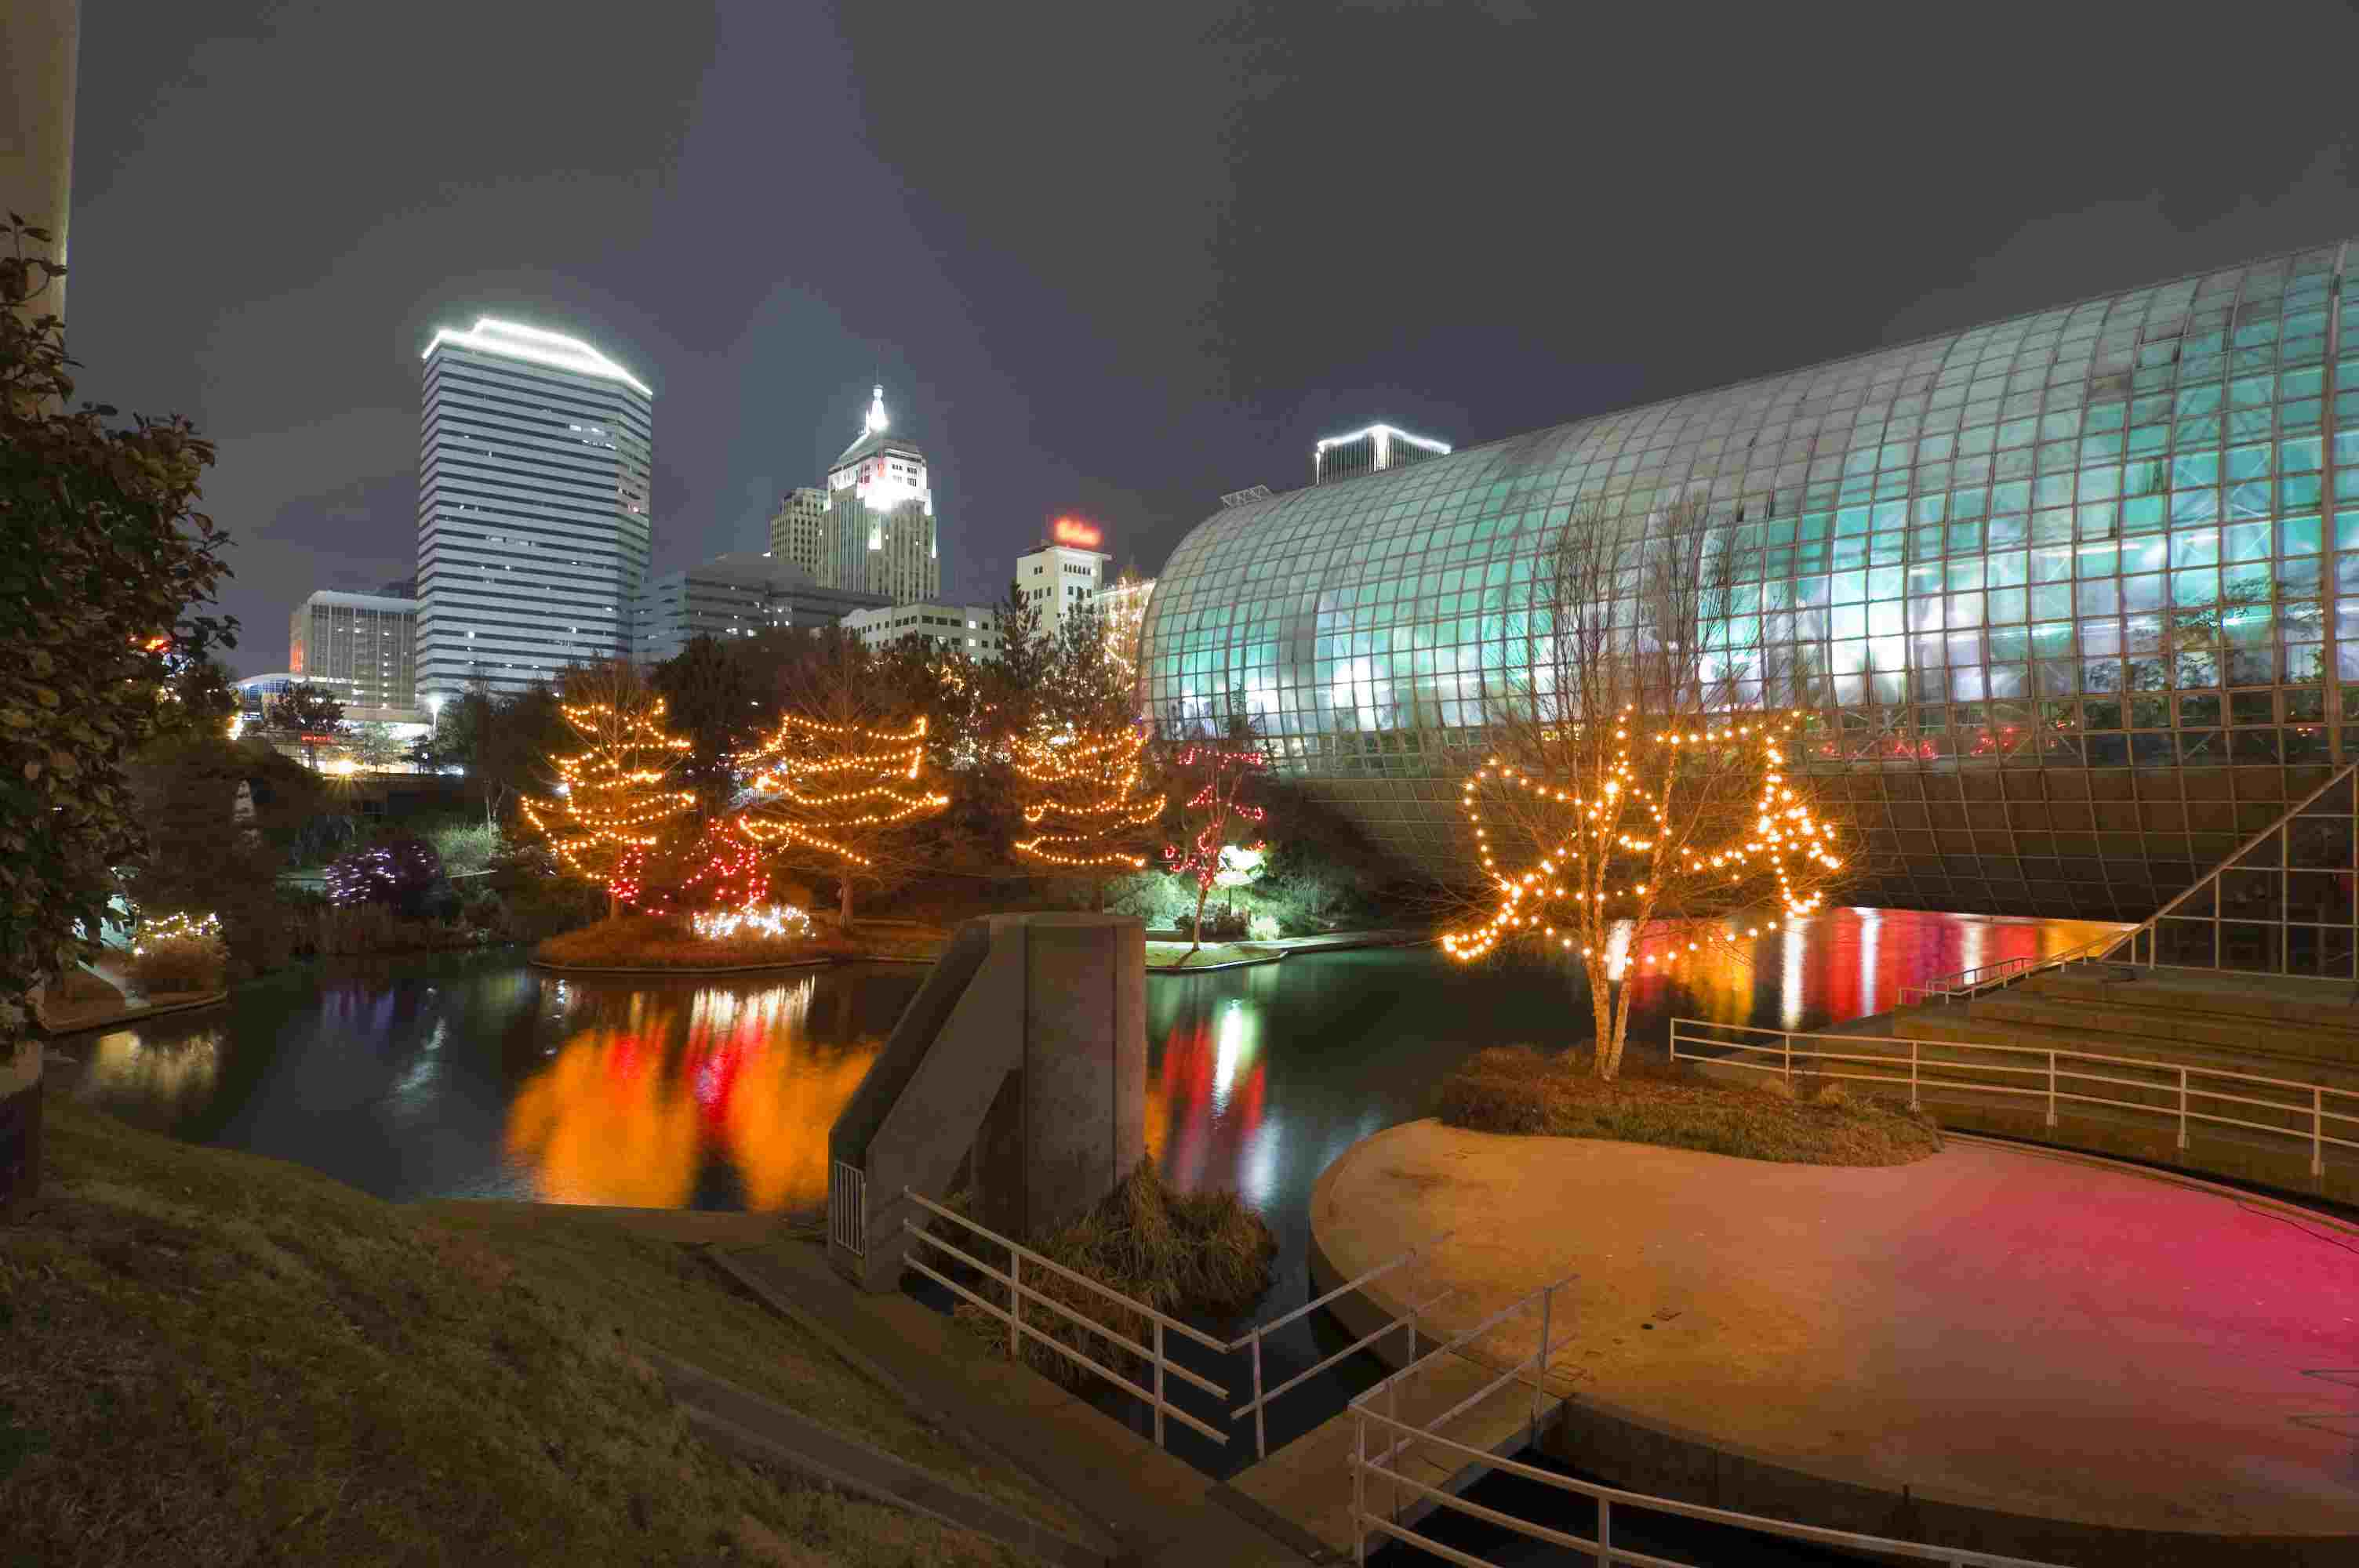 Okc Christmas Events.Guide To The Christmas Holiday In Oklahoma City